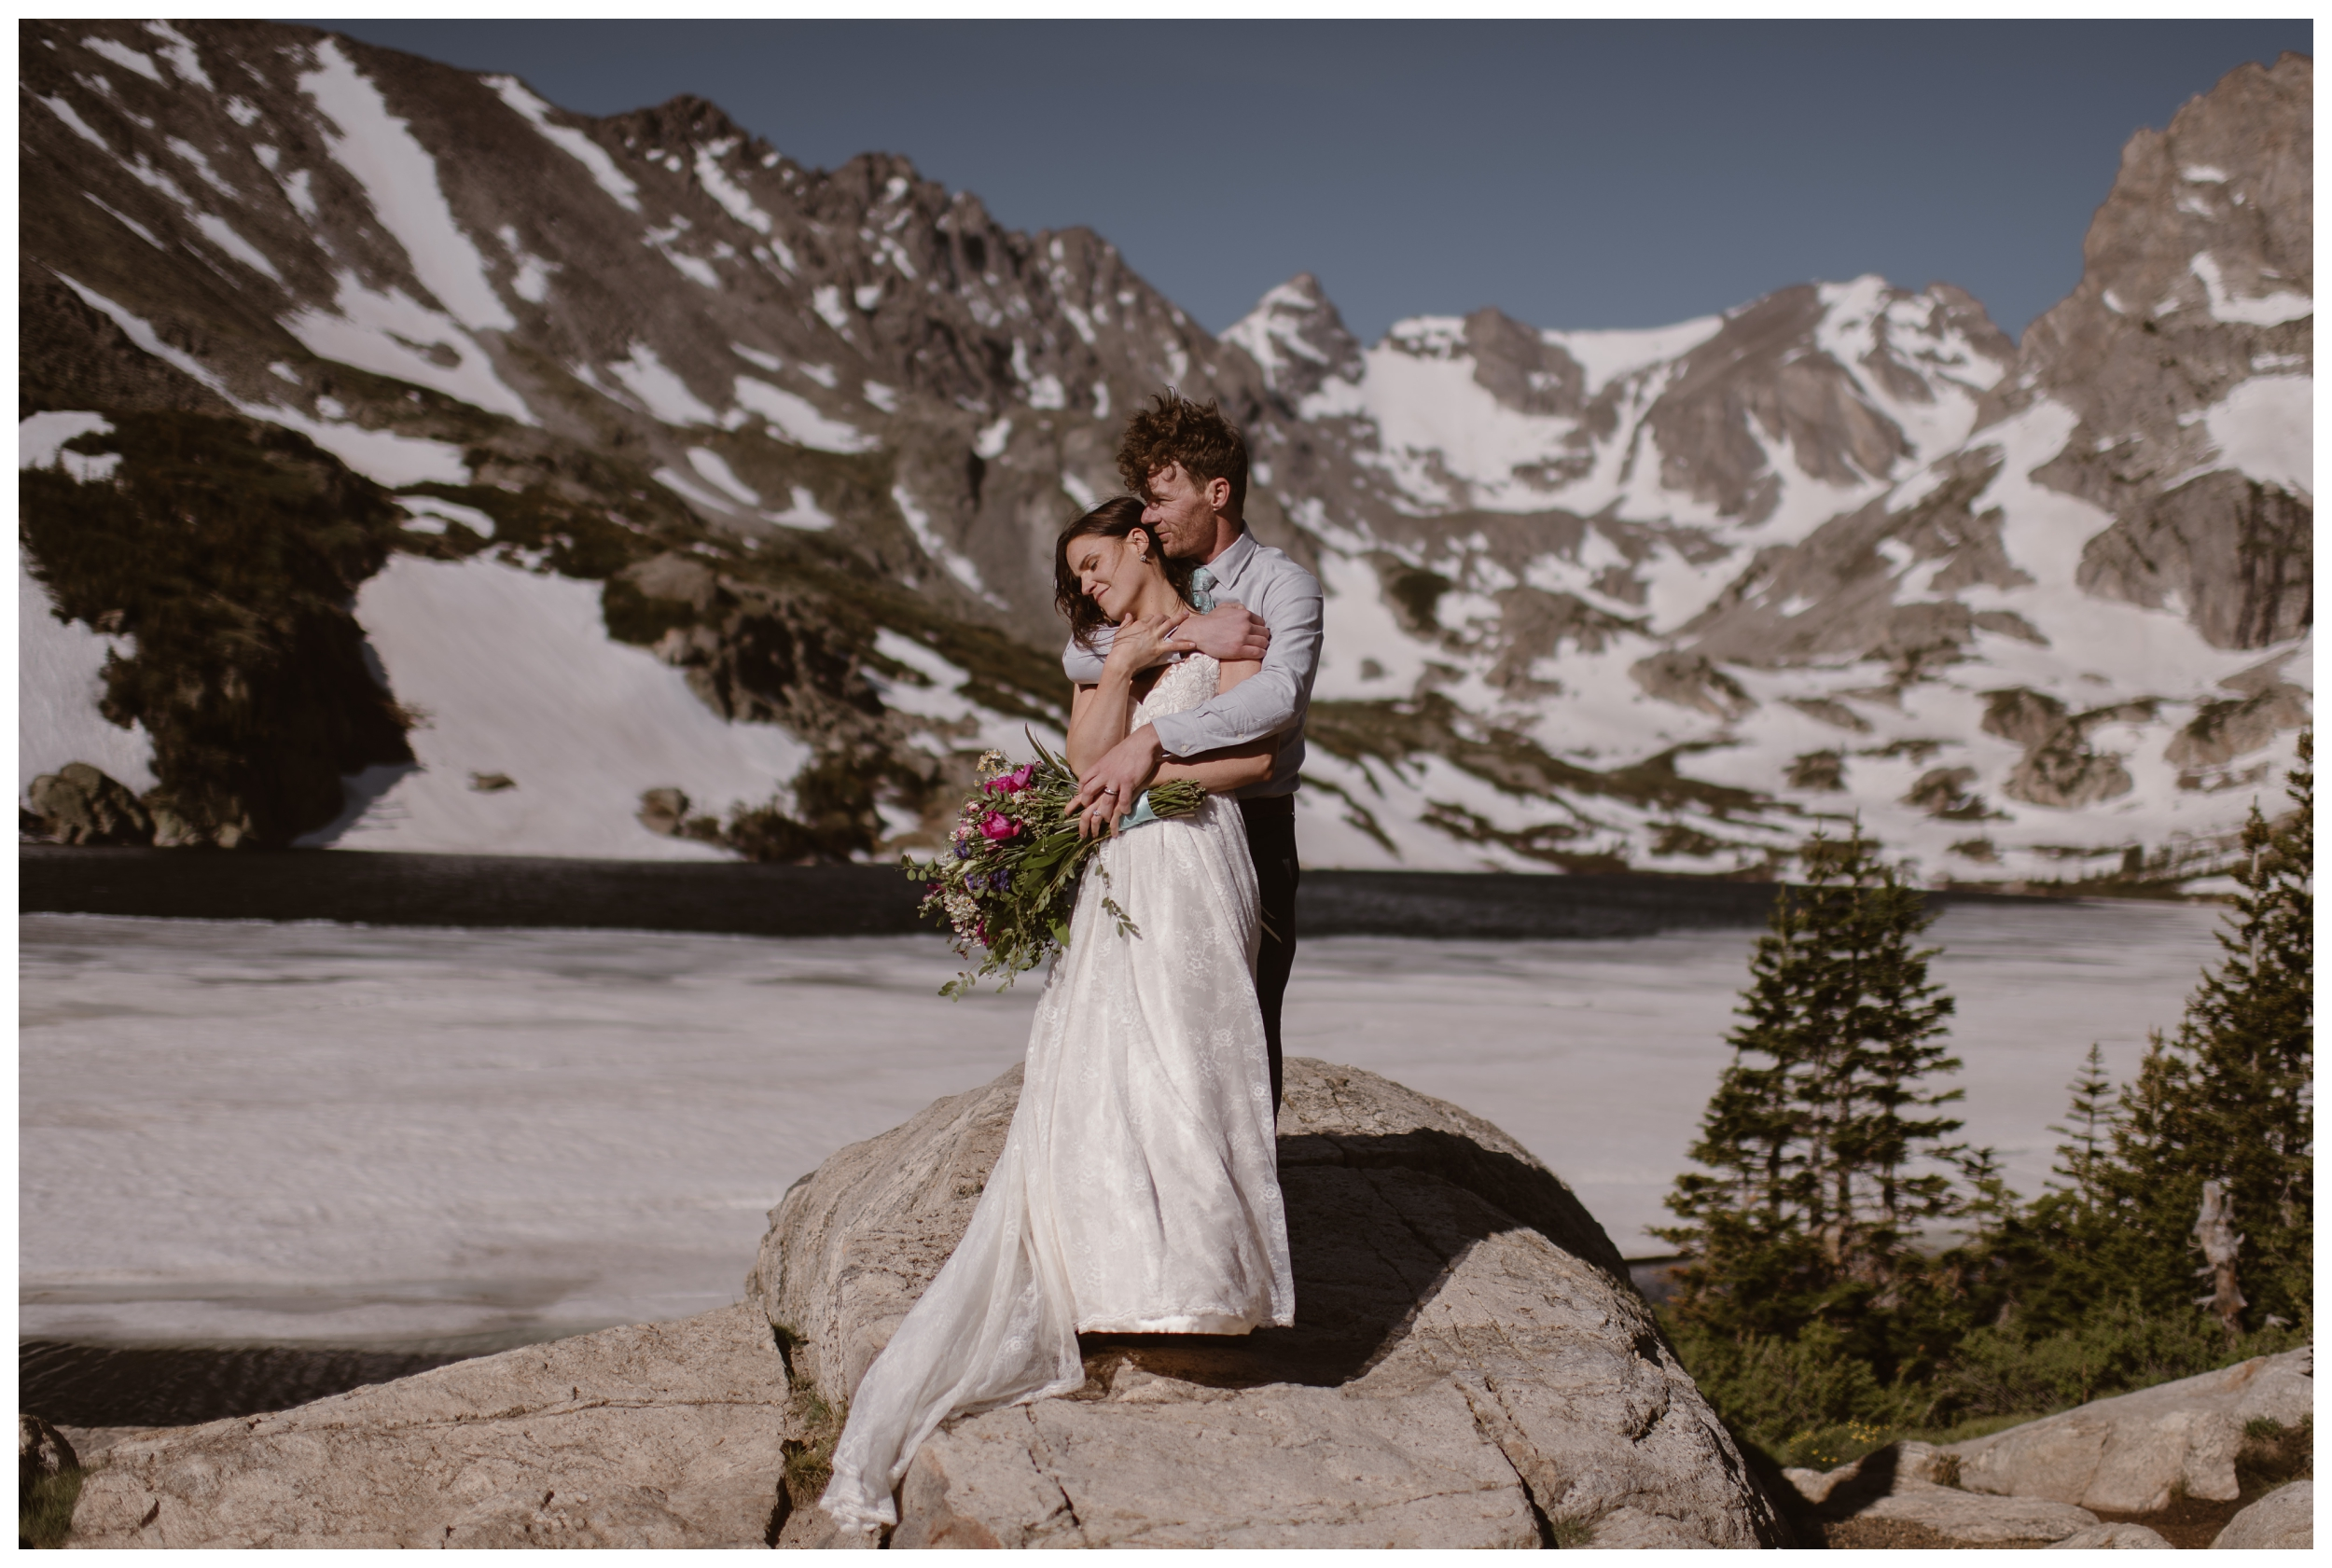 Snowy mountain peaks of Nederland, Colorado behind them, Karen and Matt embrace after their high alpine lake elopement ceremony. Photo by Adventure Instead, Maddie Mae.